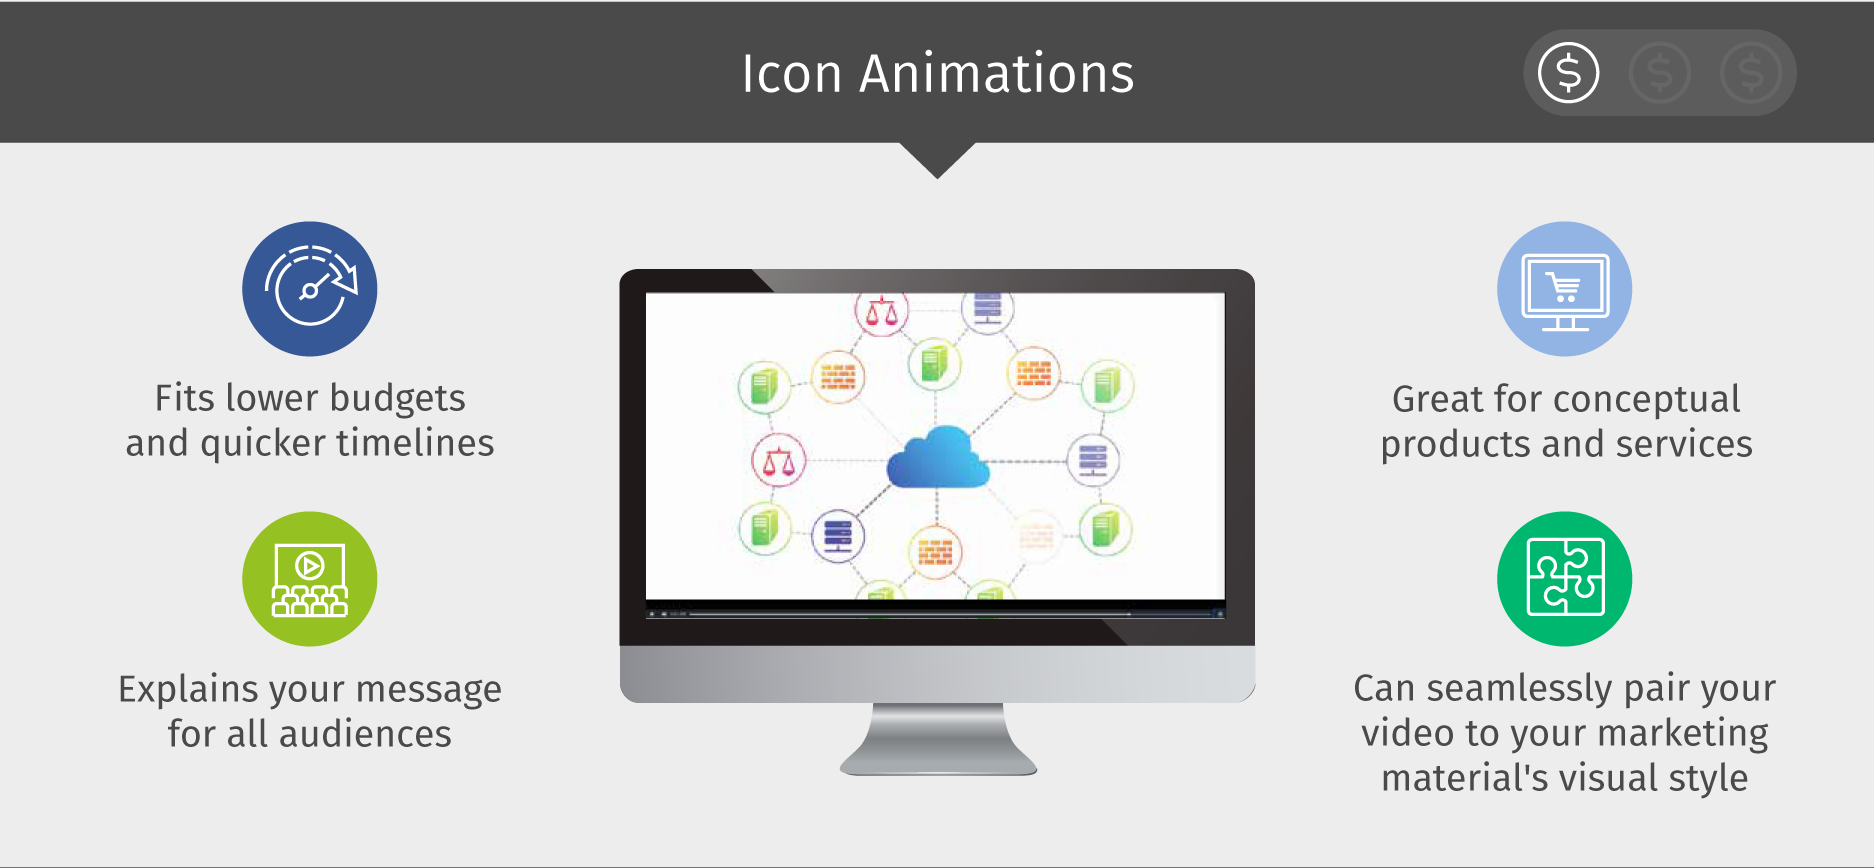 Icon Animations